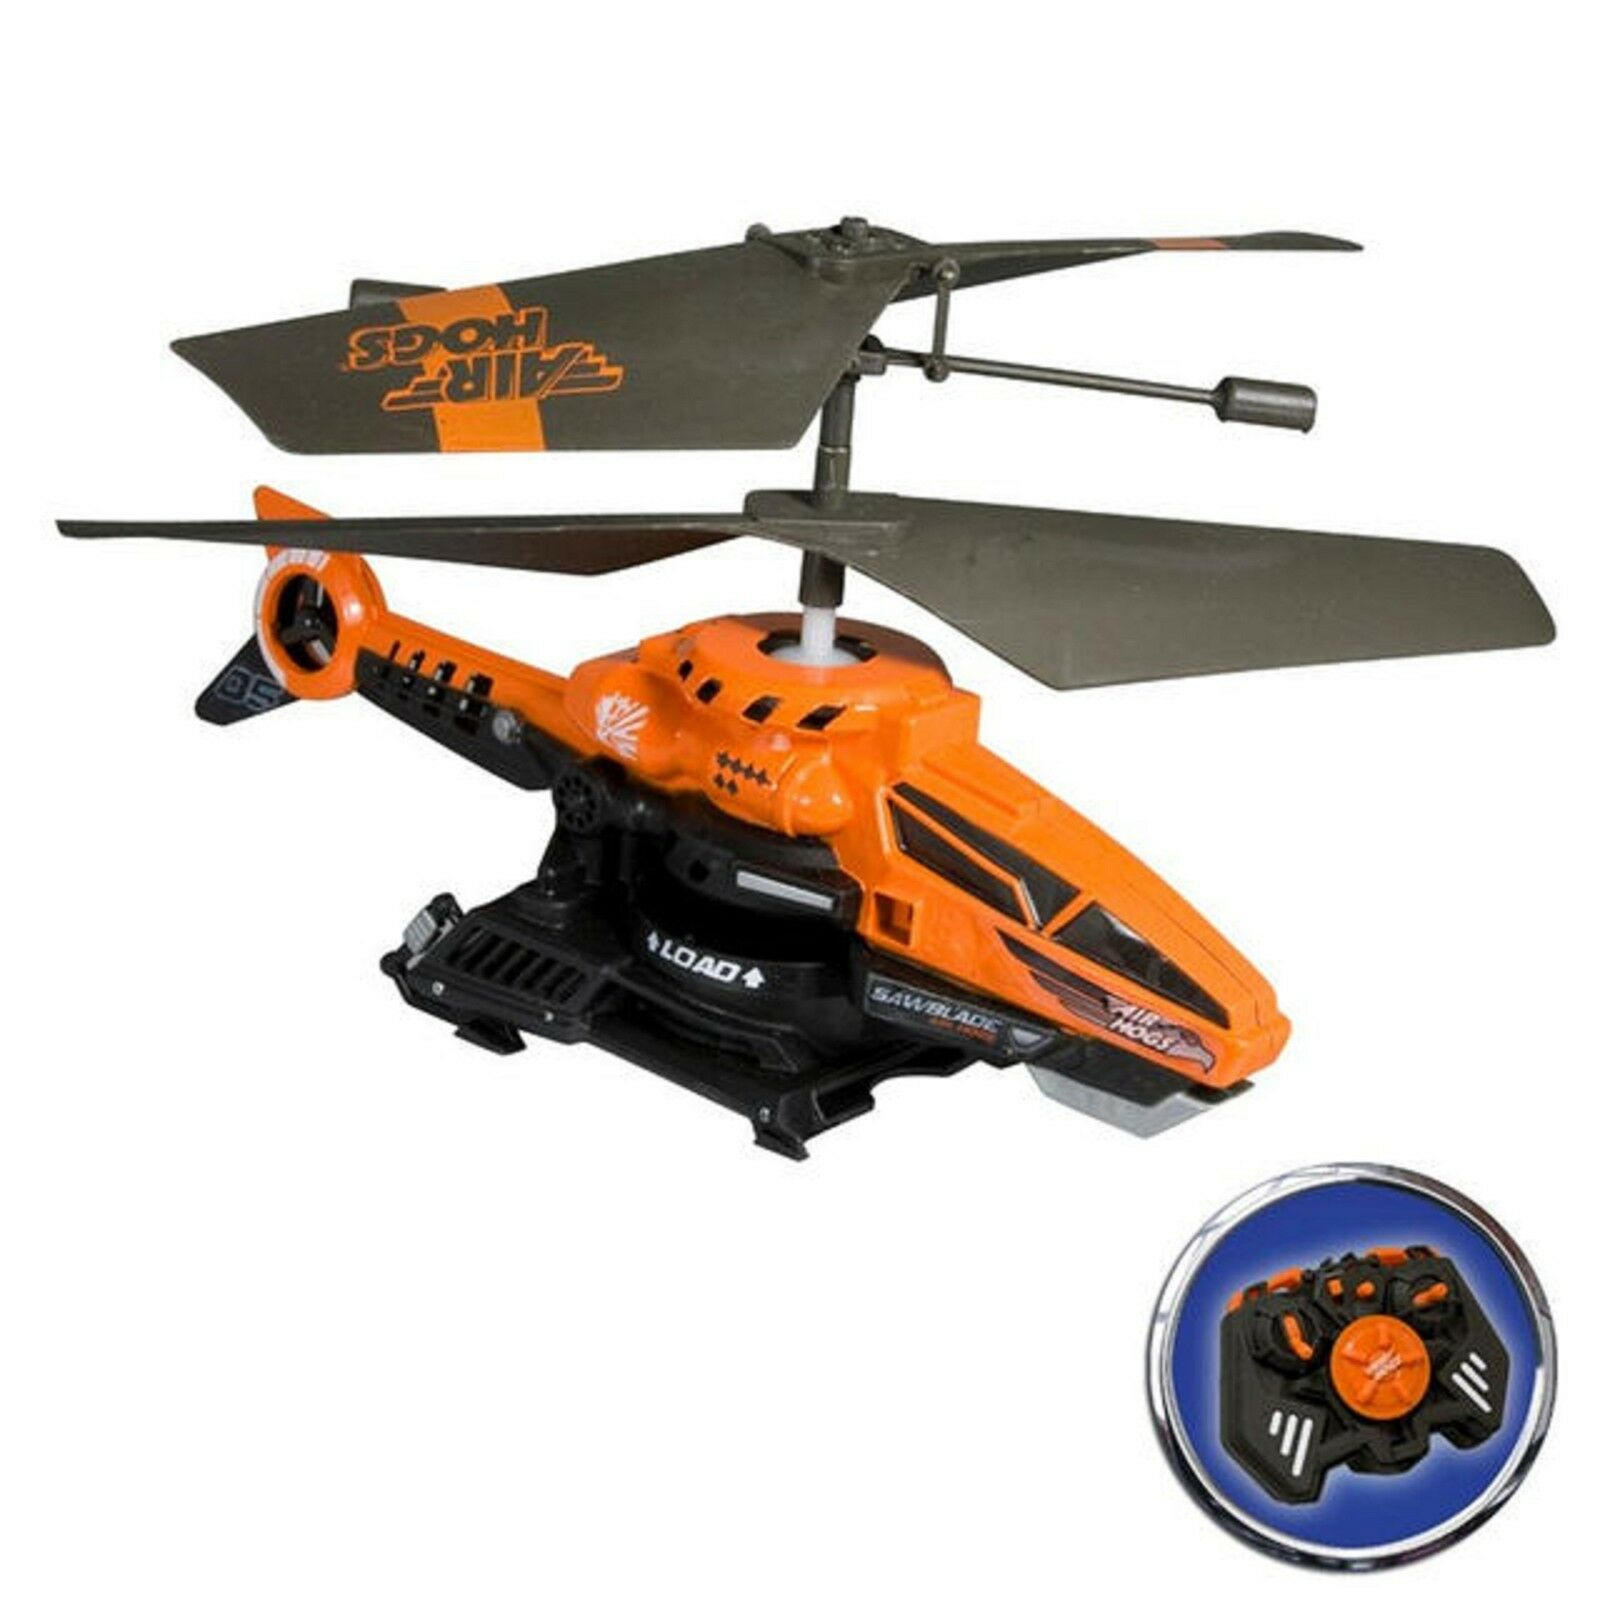 Air Hogs Saw Blade Remote Control Disk Firing Helicopter orange 8+ Toy Plane Fun